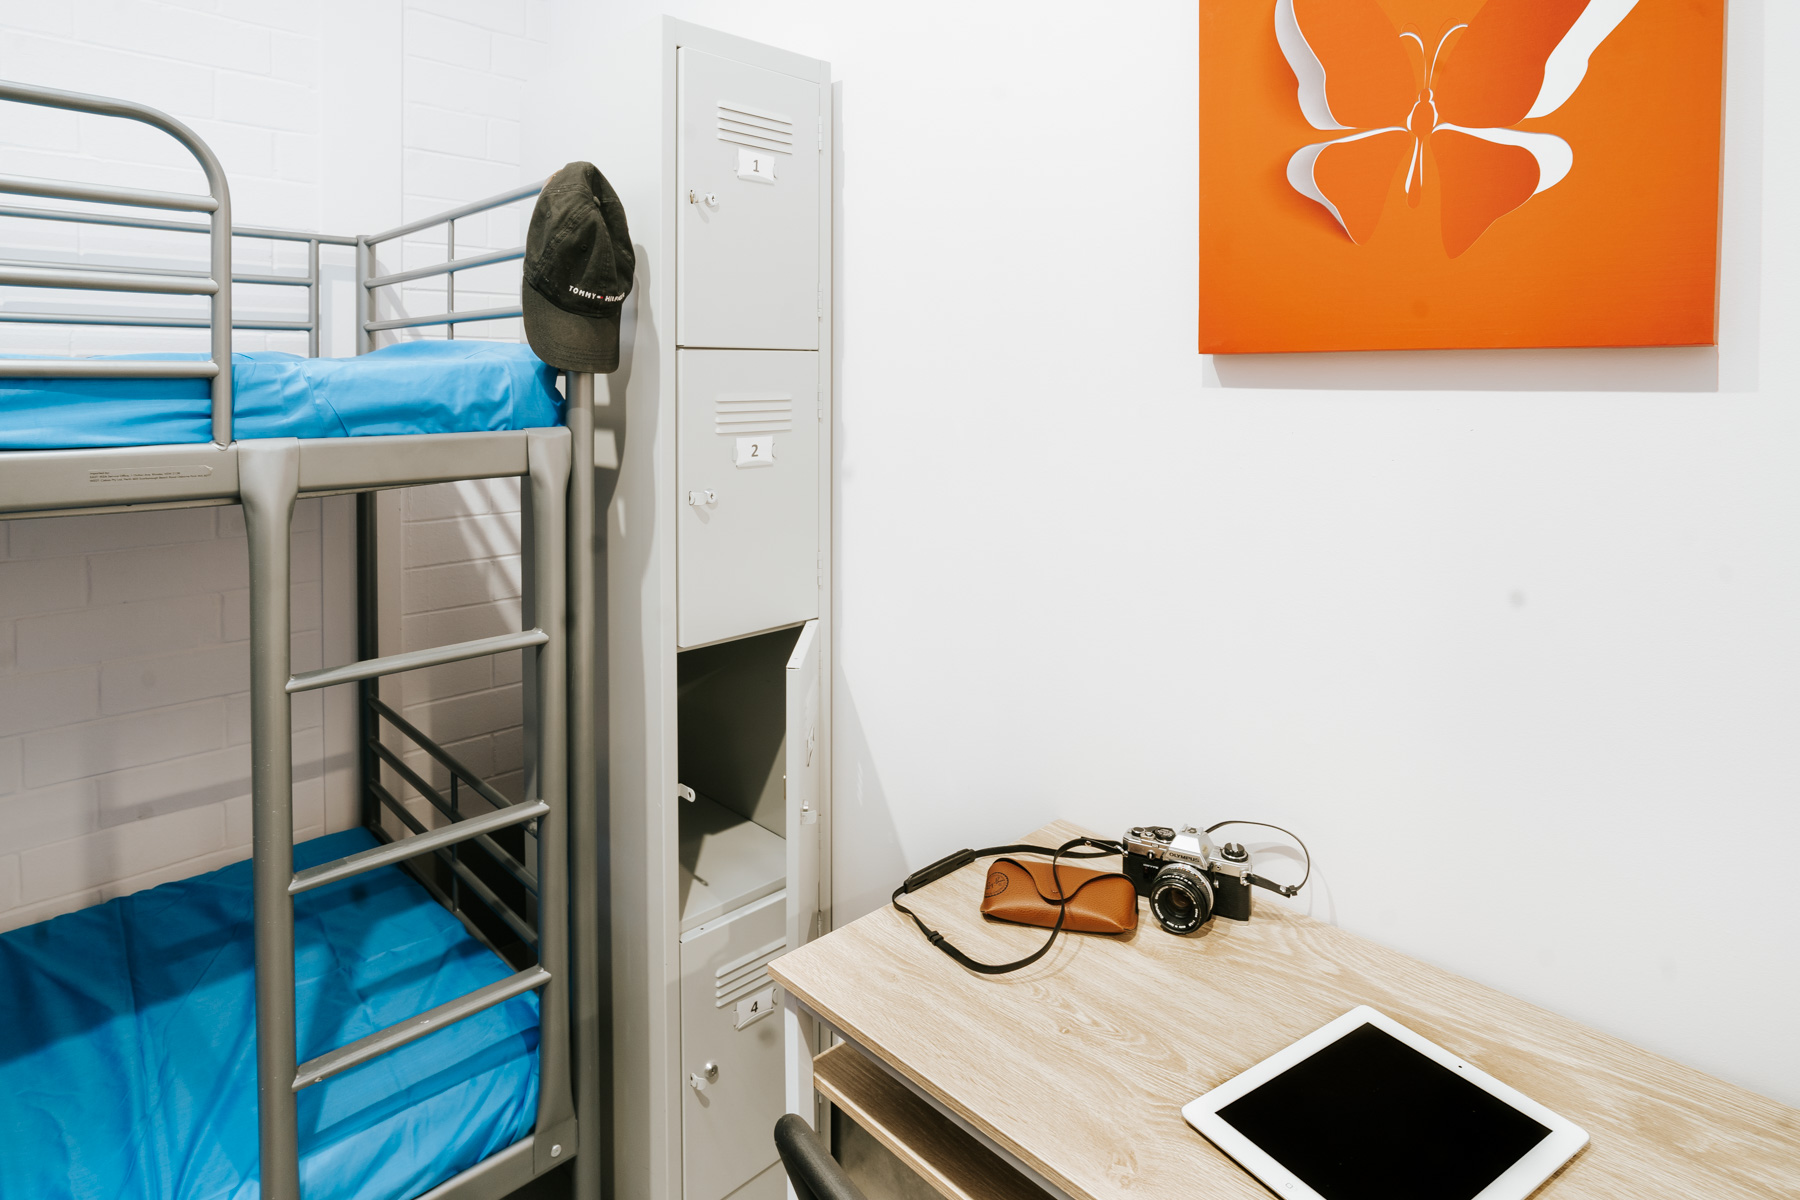 LONG TERM STAY DEAL - Planning to stay in Perth long? Why not make Perth 5 Hostel your home away from home. Our long term accommodation will make it easy with all you need to get settled in our great city!